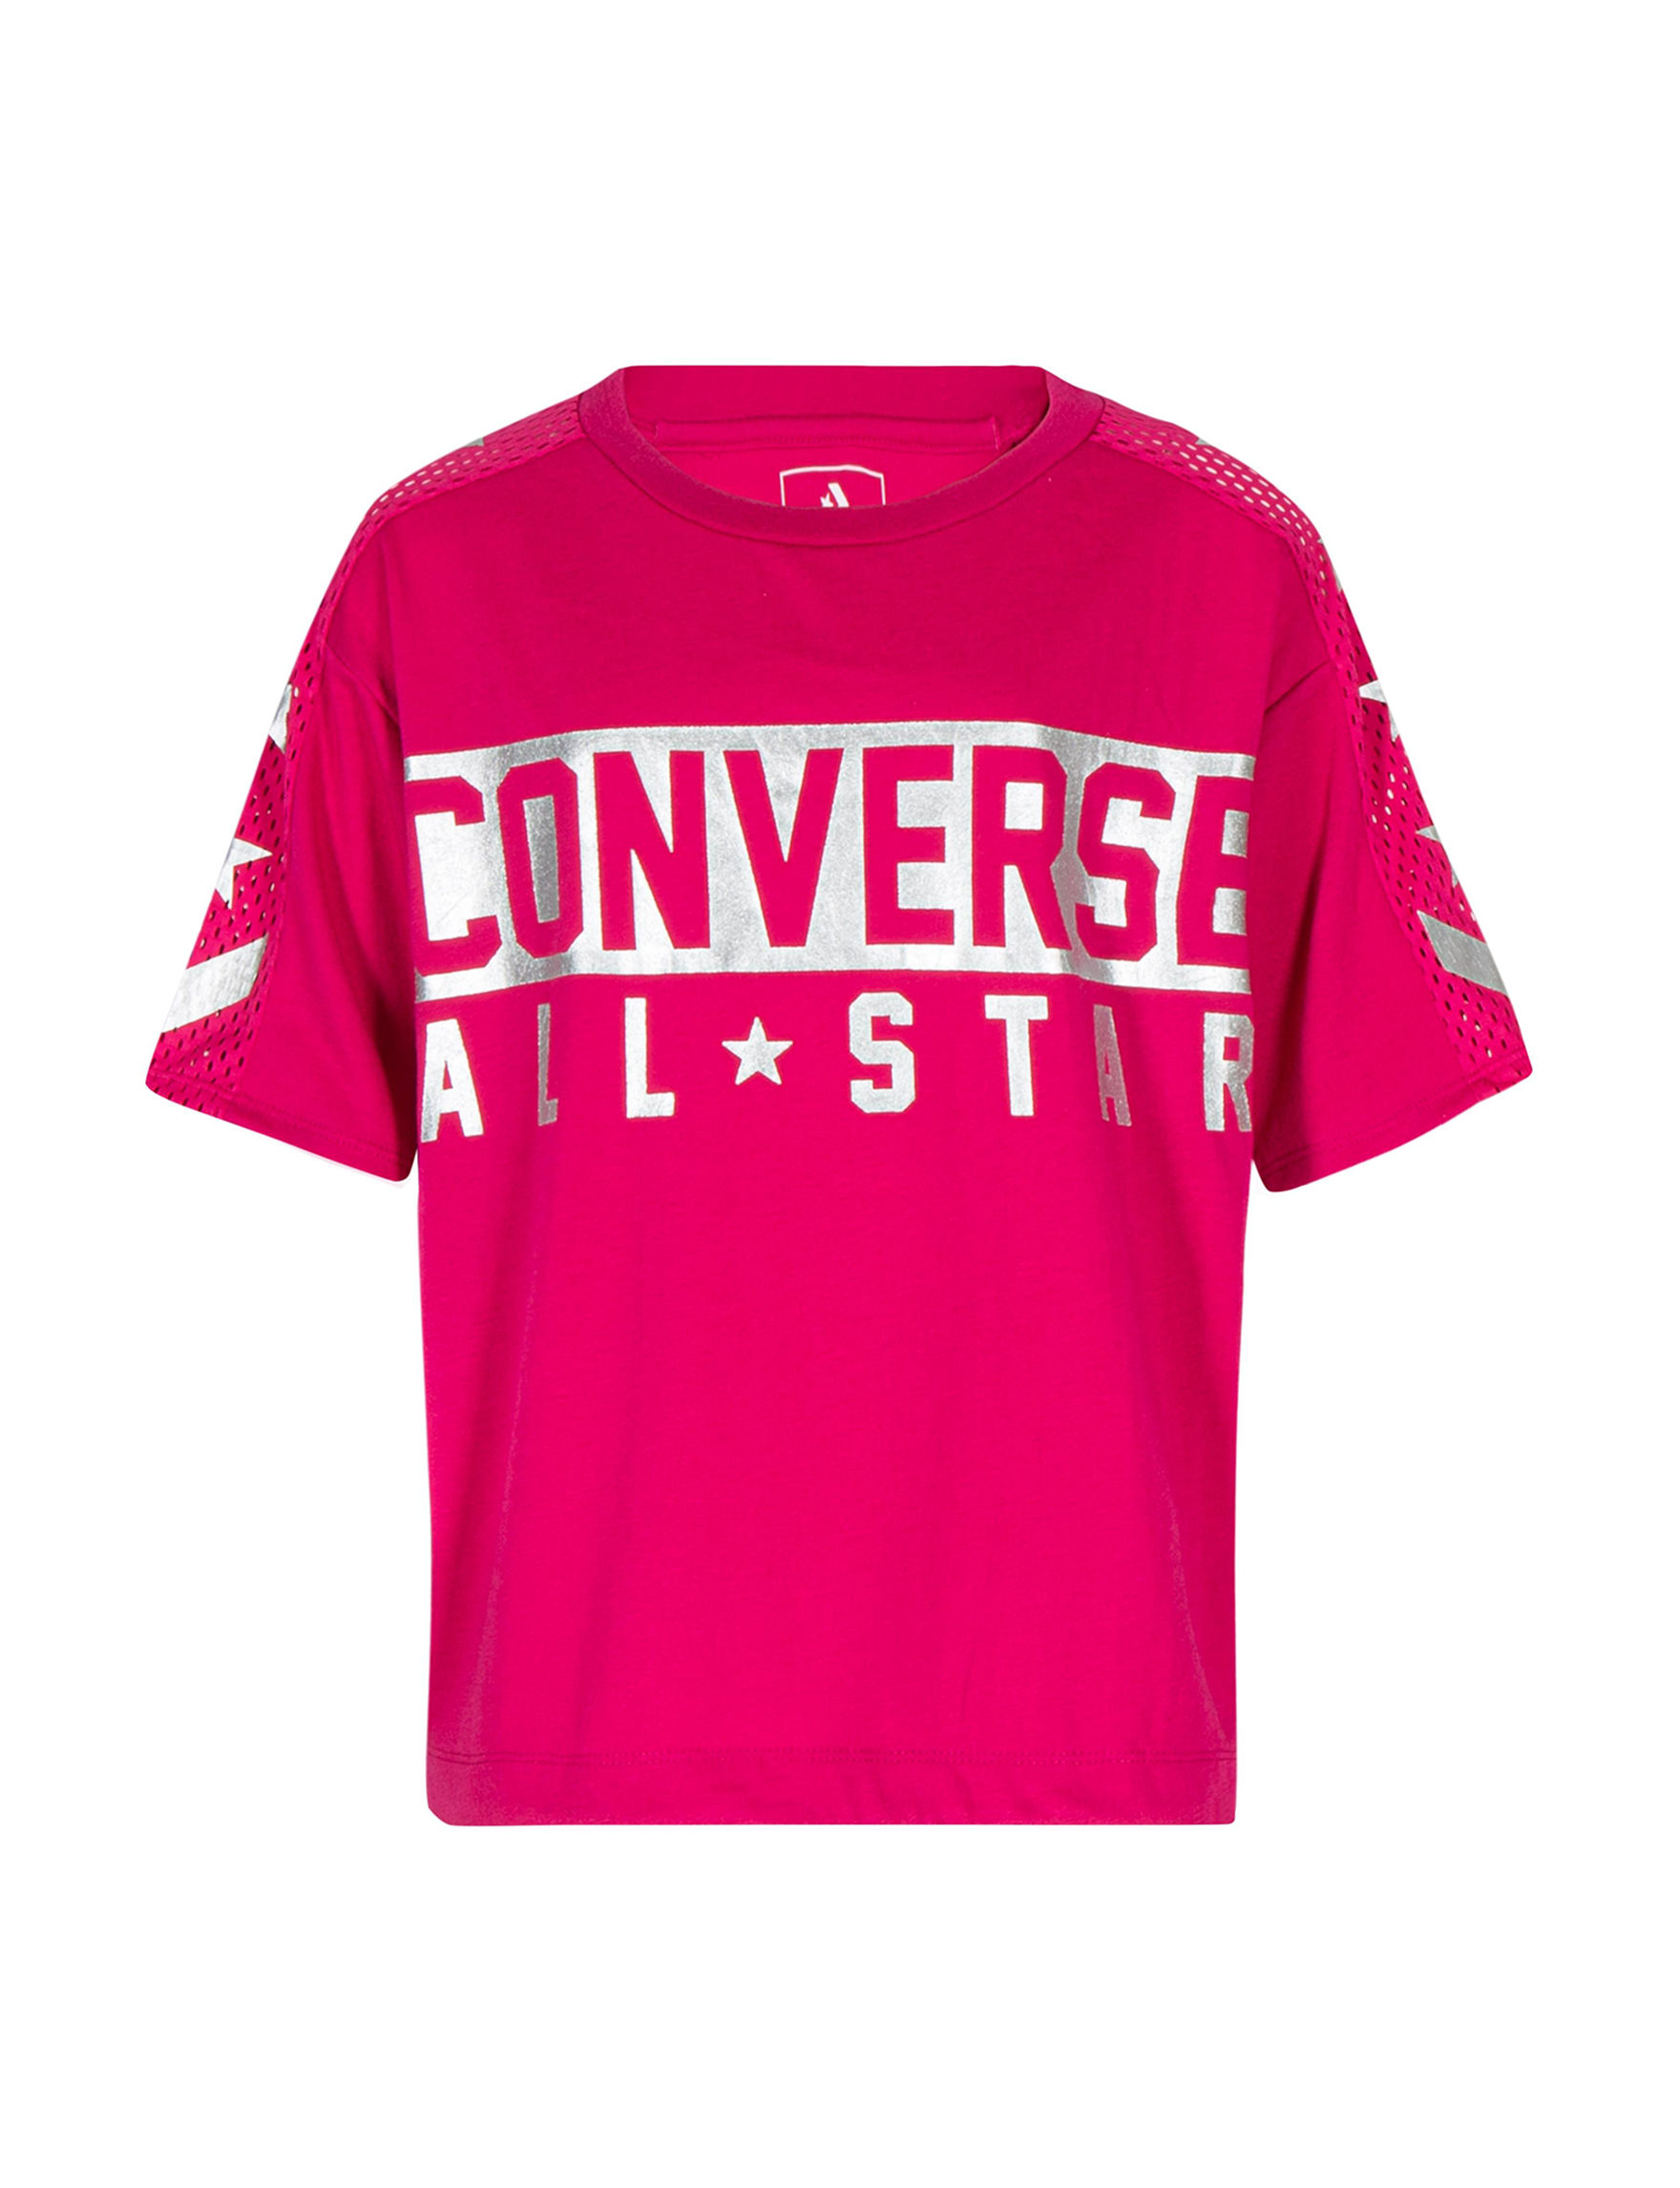 Converse Hot Pink Tees & Tanks